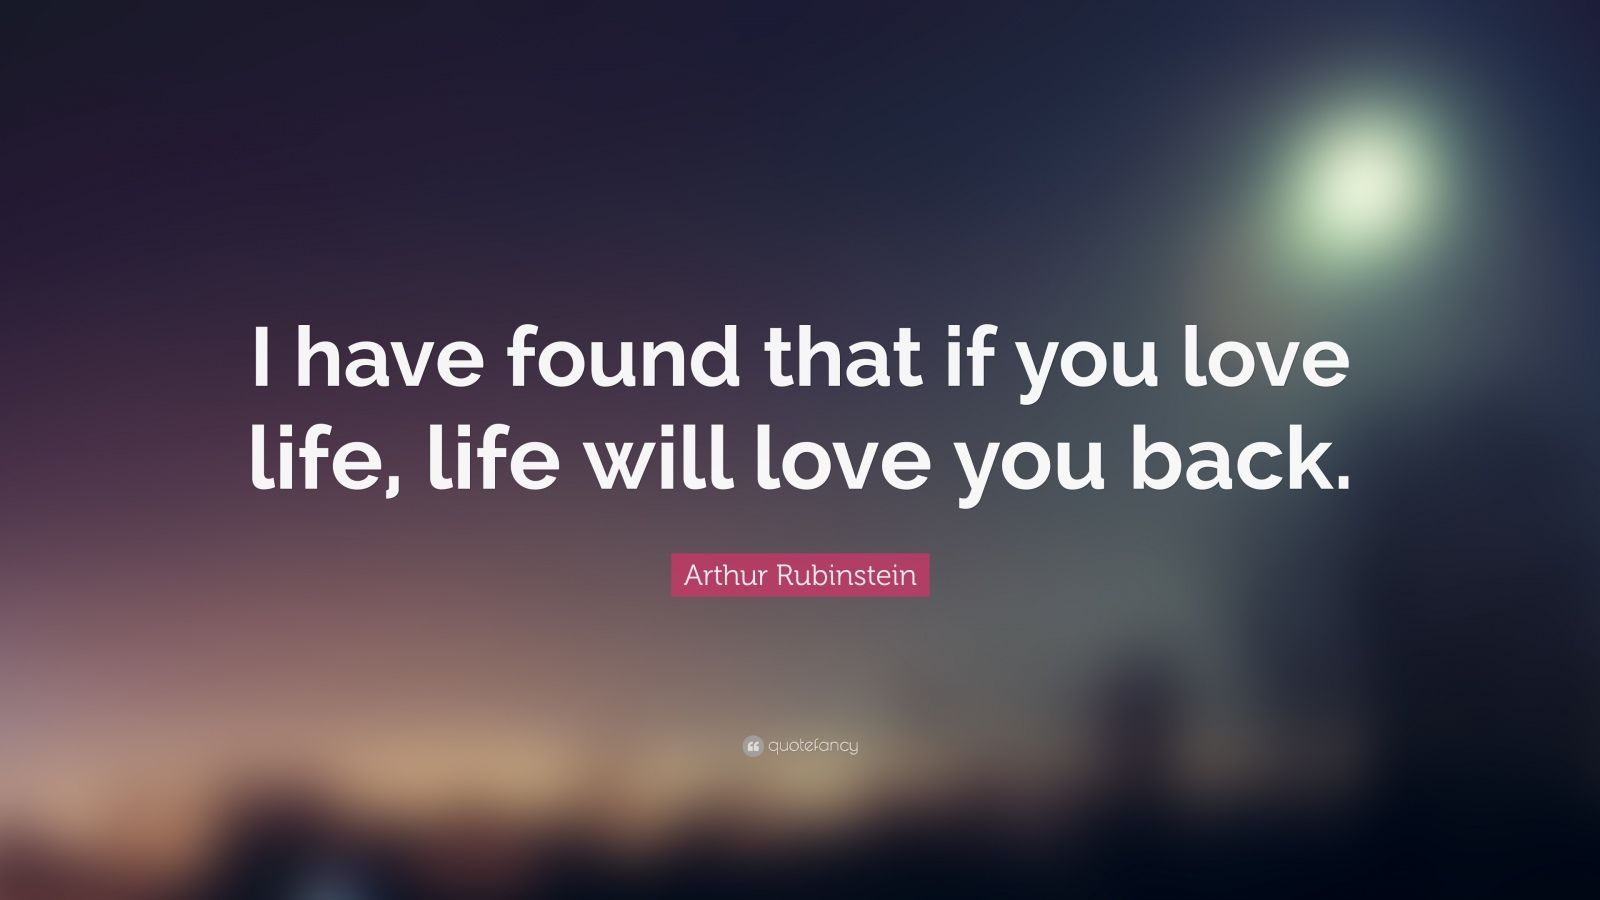 Life Quotes I Have Found That If You Love Will